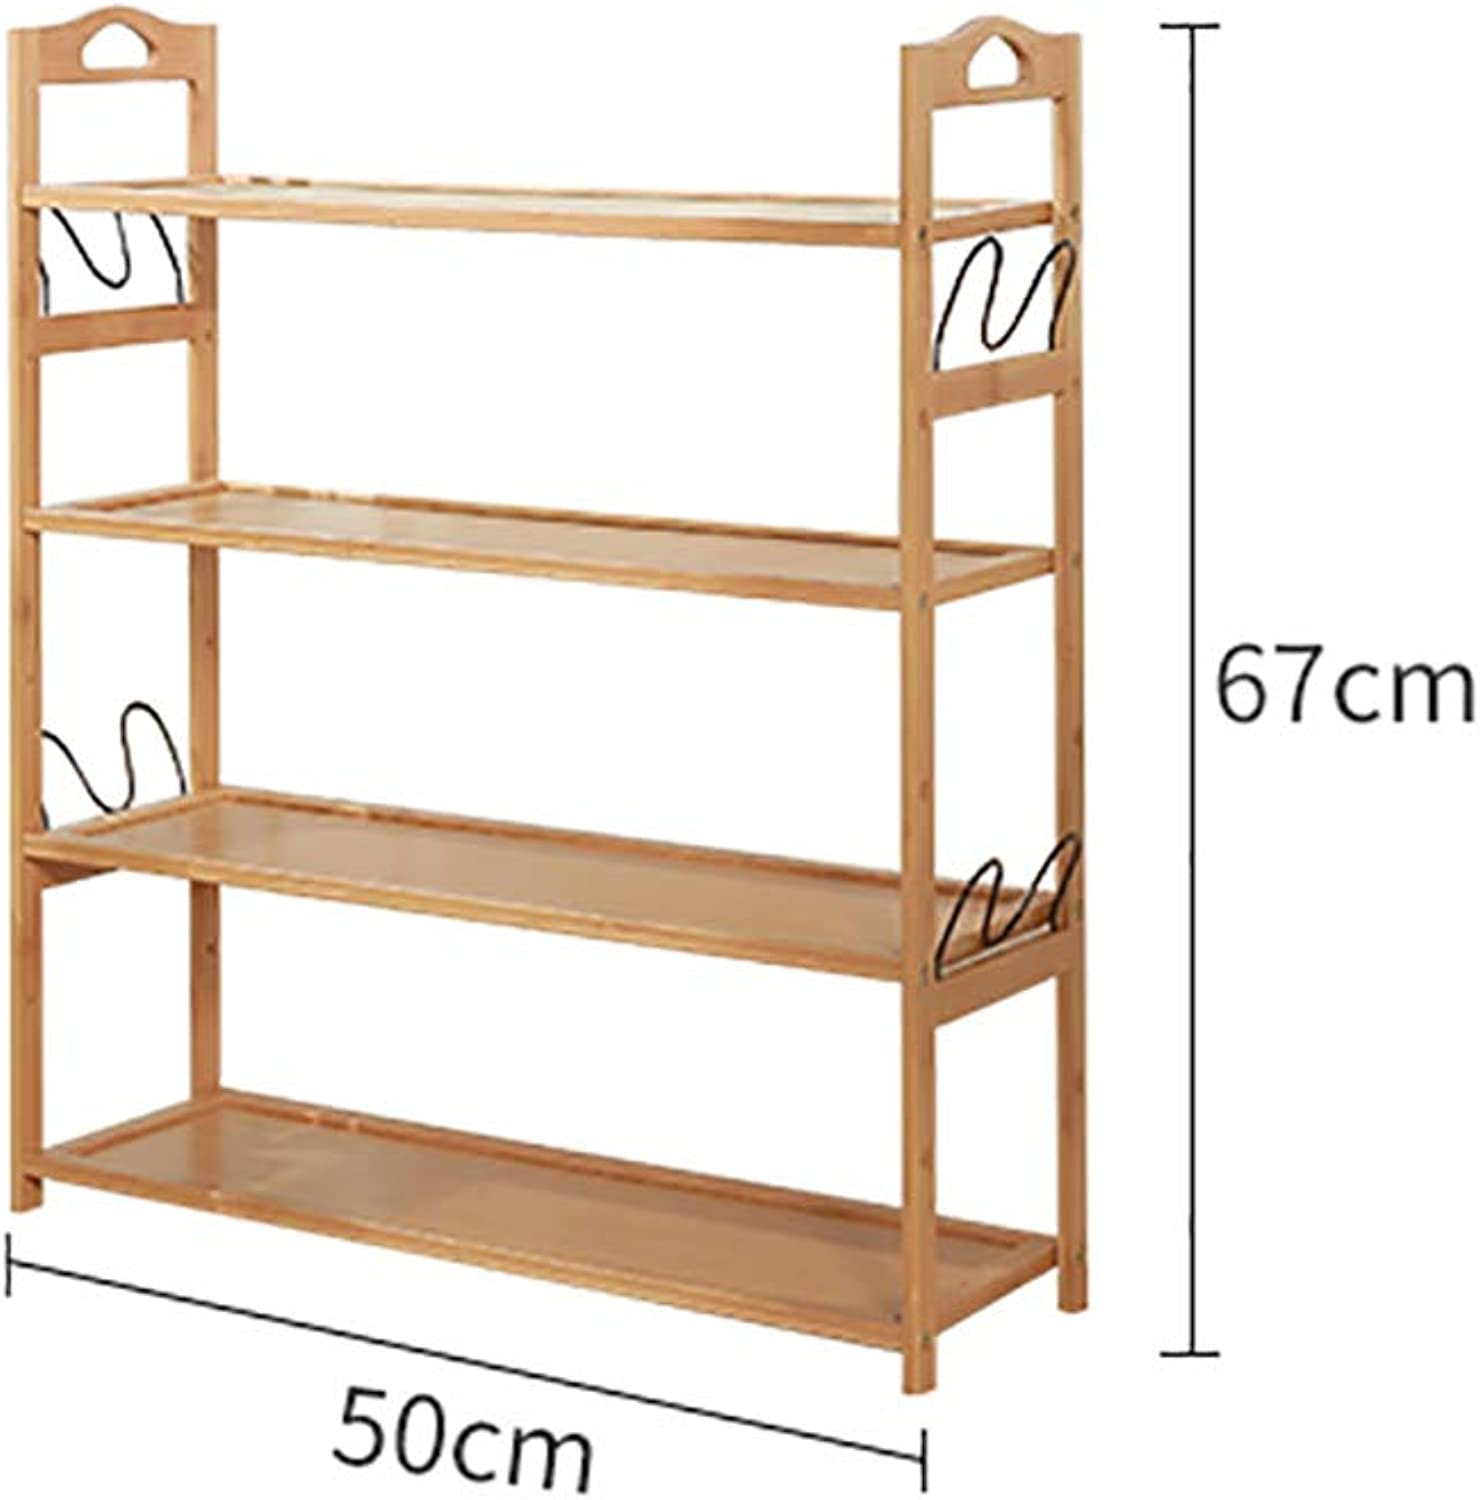 4-Layer shoes Rack Shelf hot Pot Rack Flower Stand Bookshelf Storage Shelf shoes Cabinet Multifunction Household Doorway Entrance Space Saving (Size   50  24  67cm)